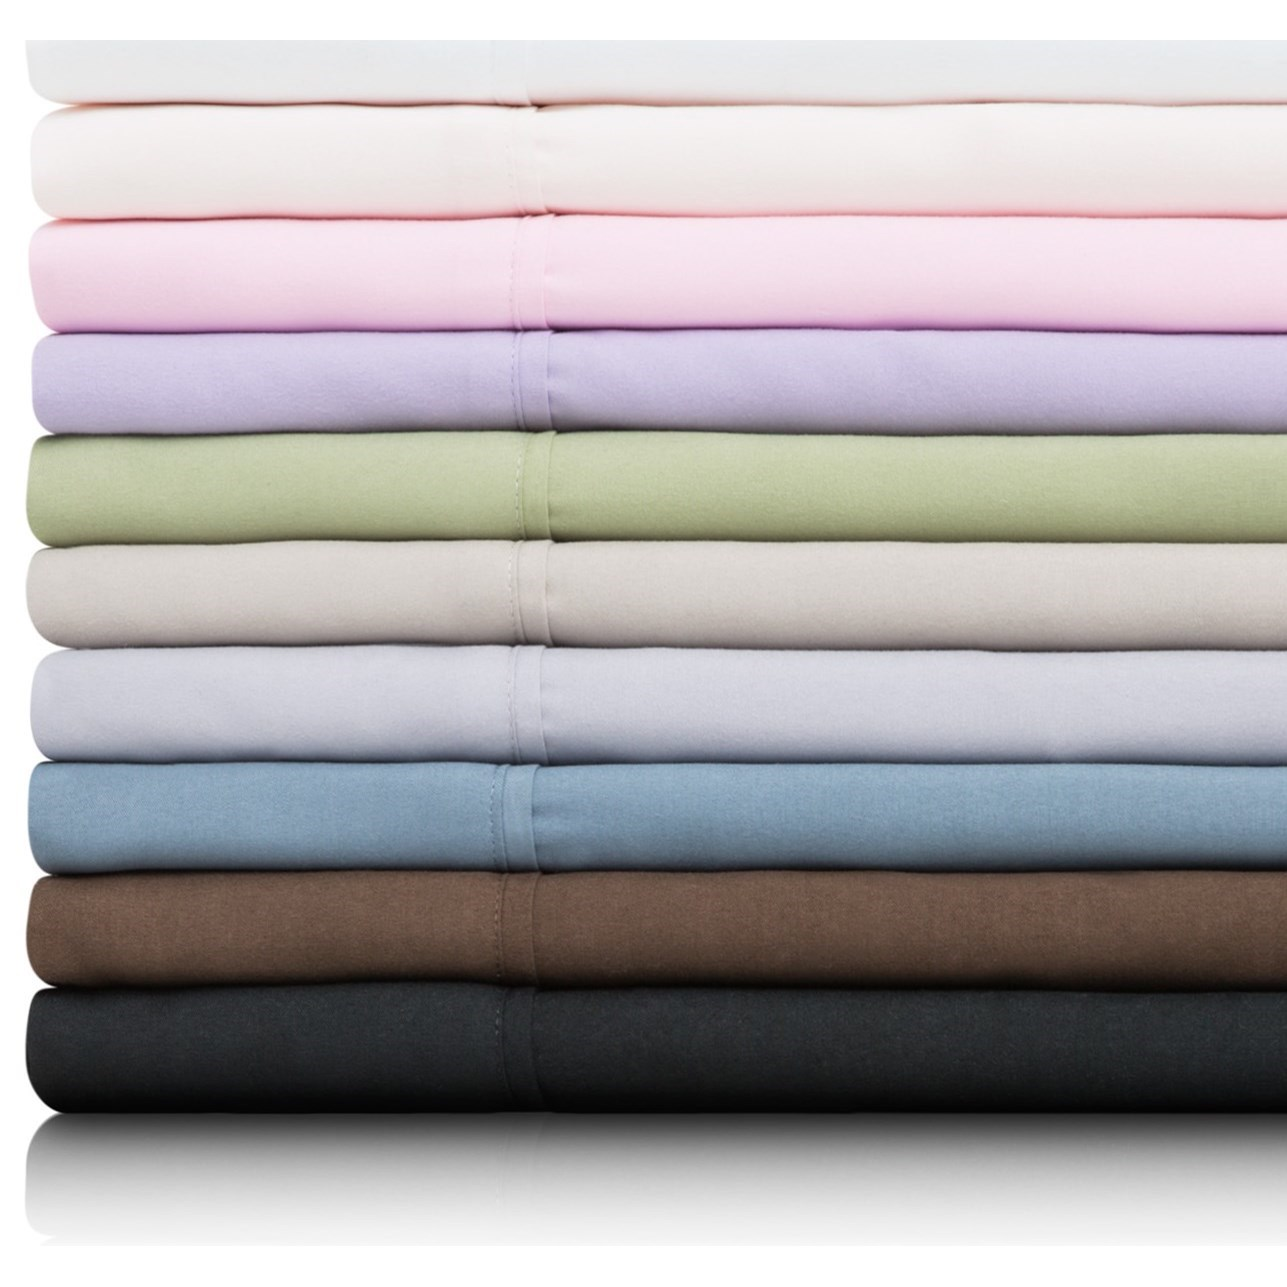 Malouf Brushed Microfiber Queen Woven™ Brushed Microfiber Olympic Shee - Item Number: MA90OQASMS